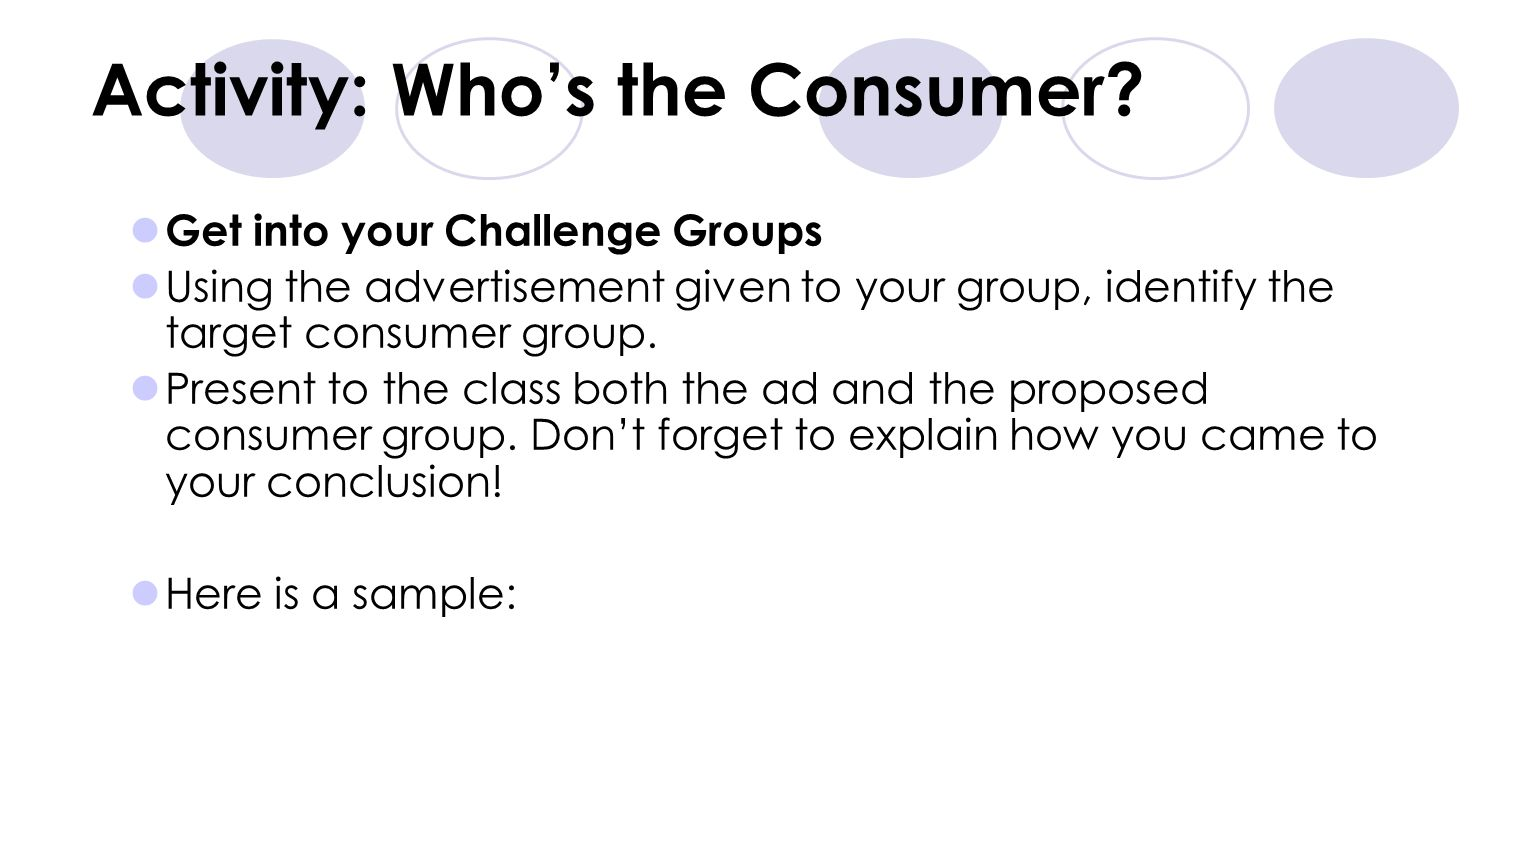 Activity: Who's the Consumer